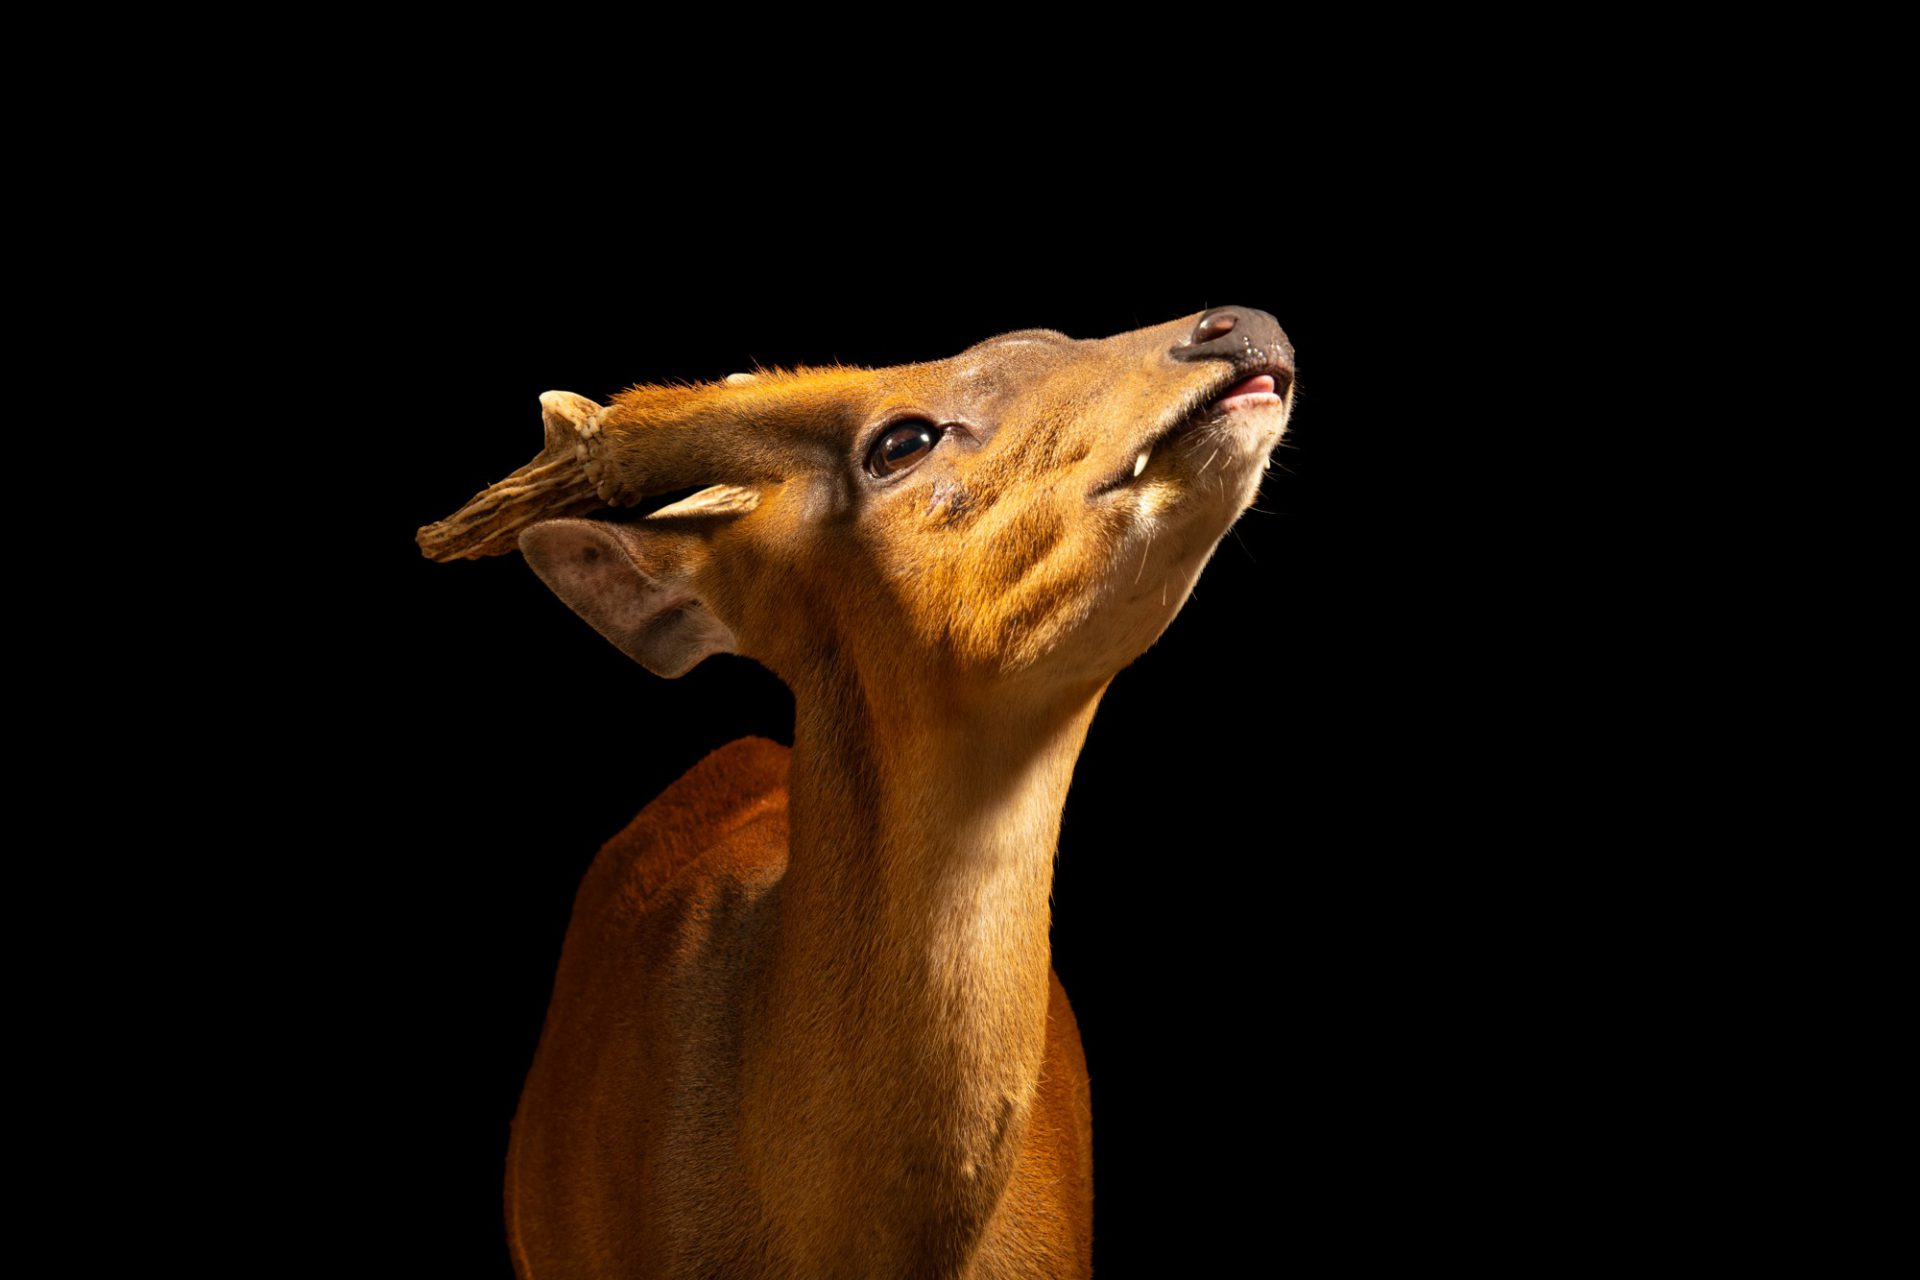 Photo: Javan barking deer (Muntiacus muntjak muntjak) at Bali Zoo.